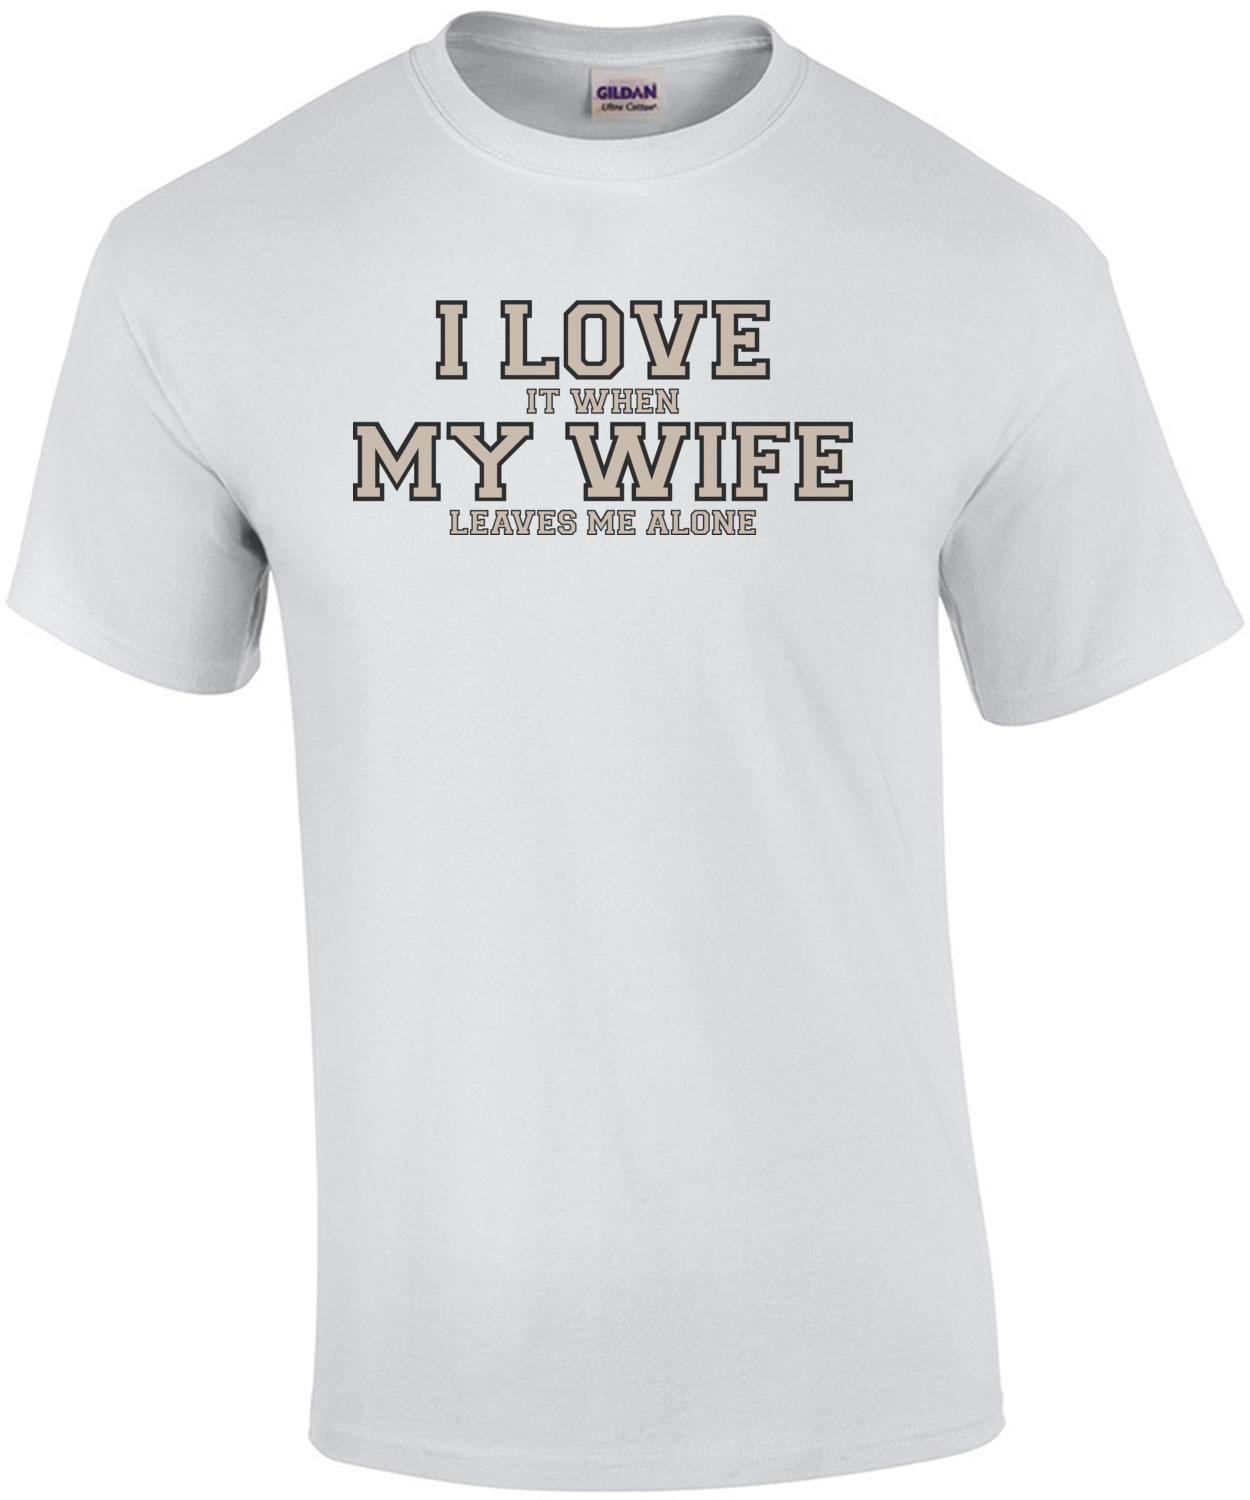 I love it when my wife leaves me alone - Funny T-Shirt